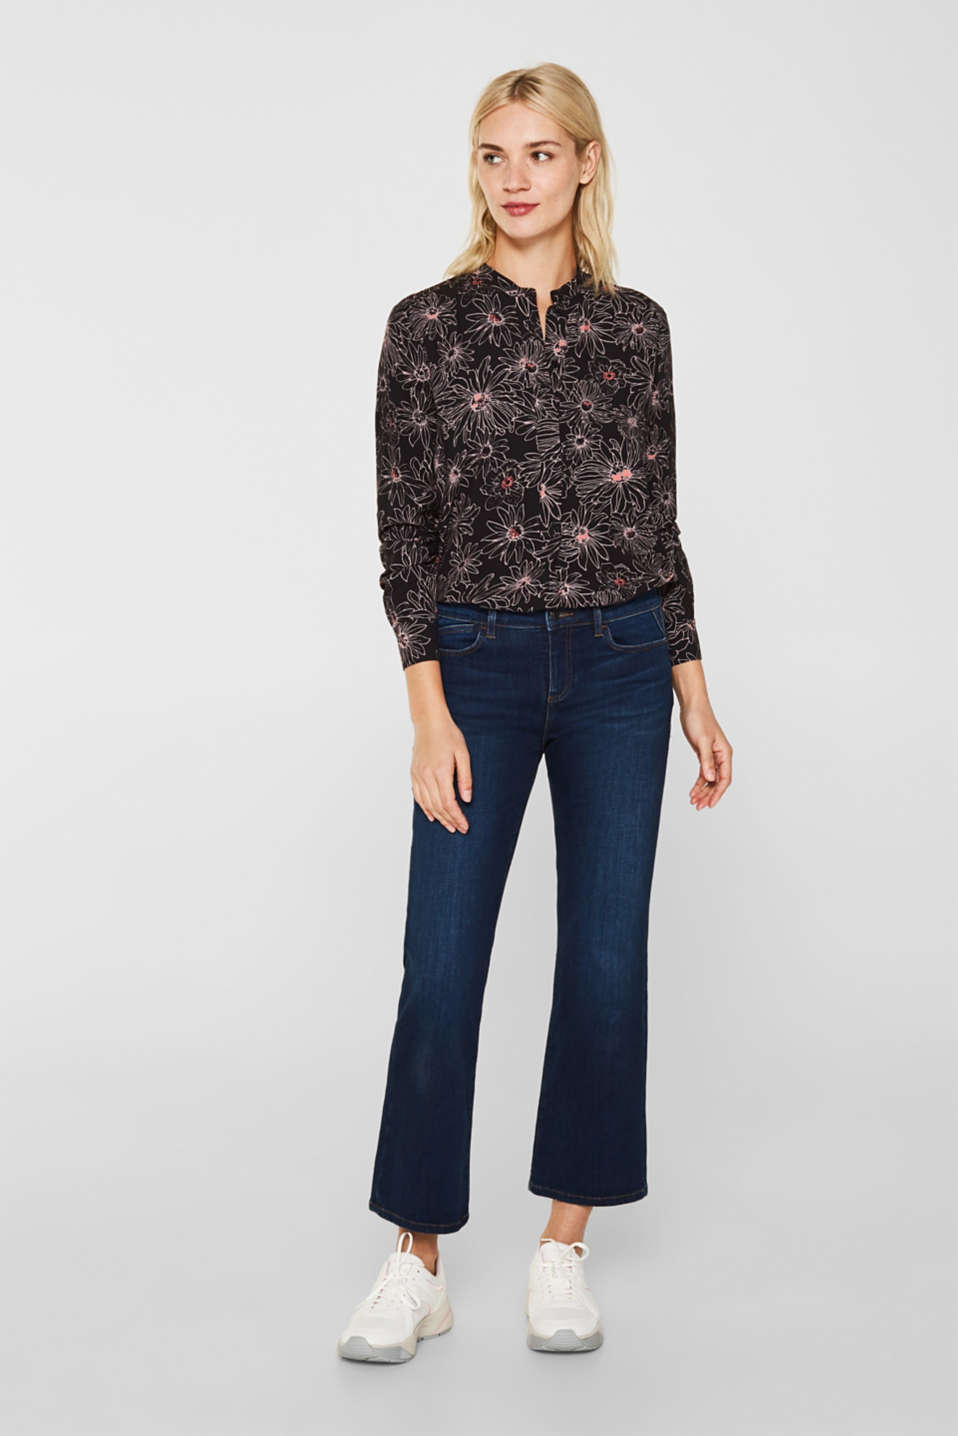 Slip-on blouse with a print and band collar, BLACK 3, detail image number 1